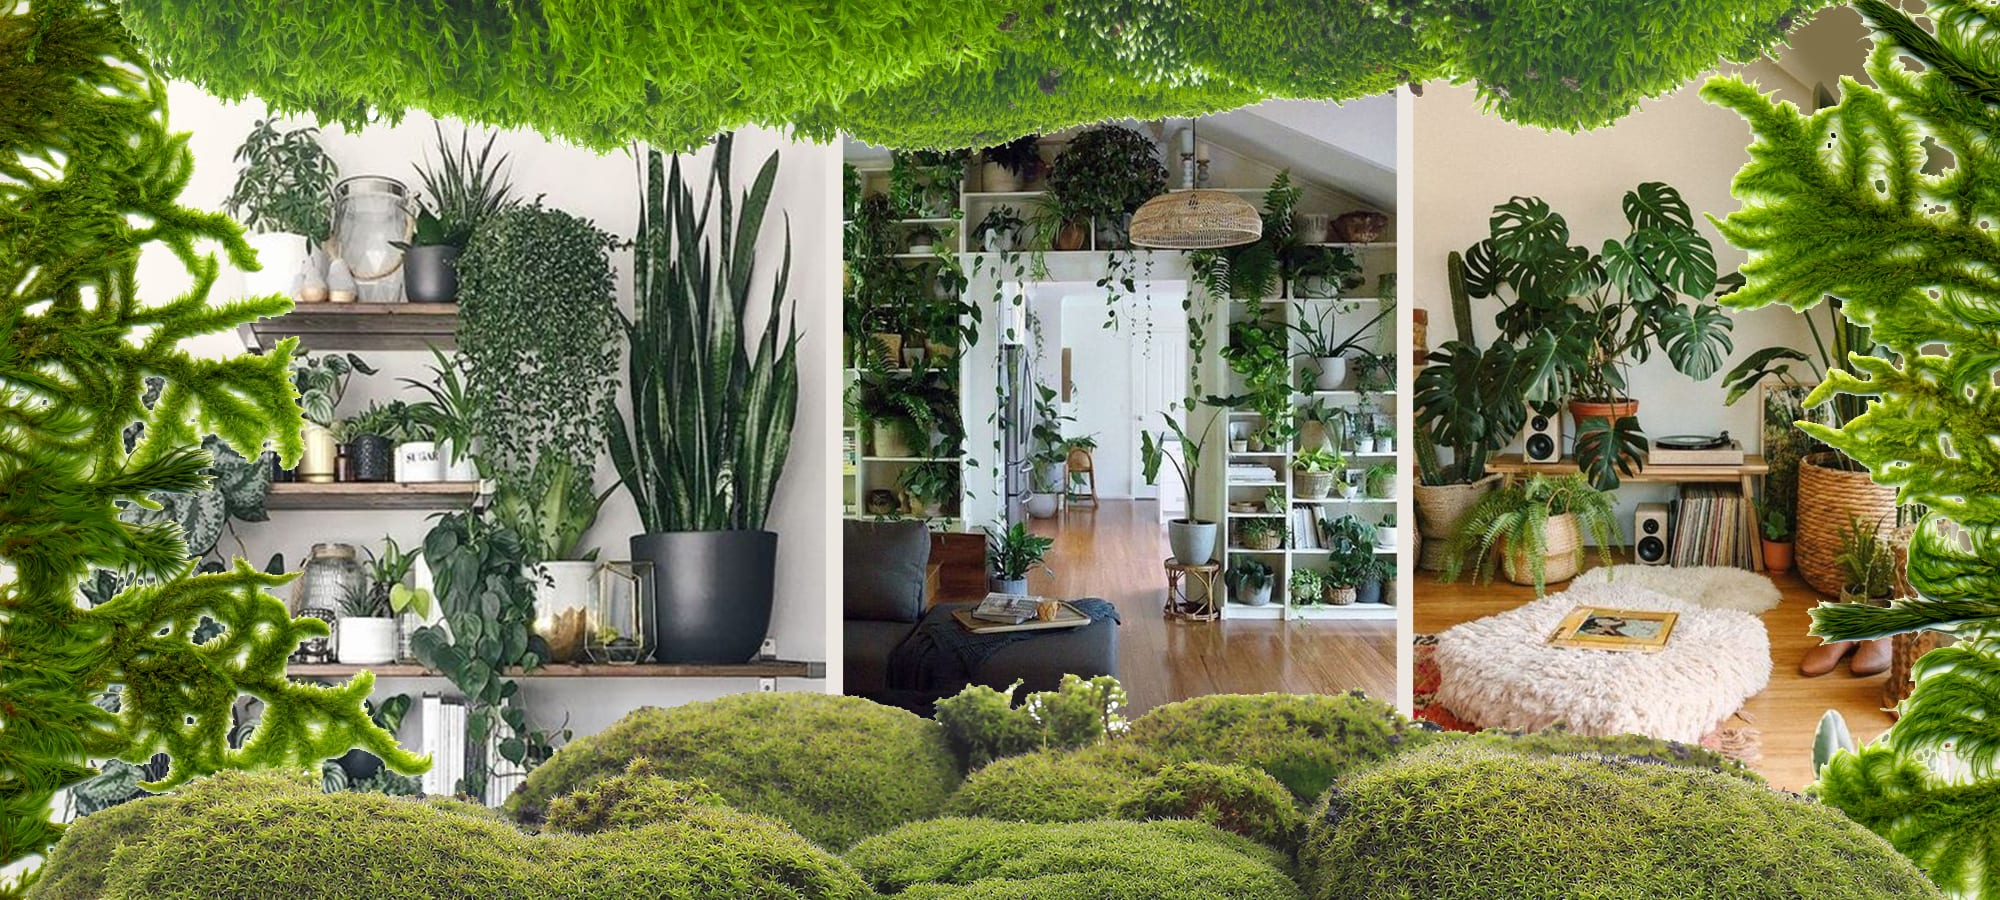 House Plants and Interior Design